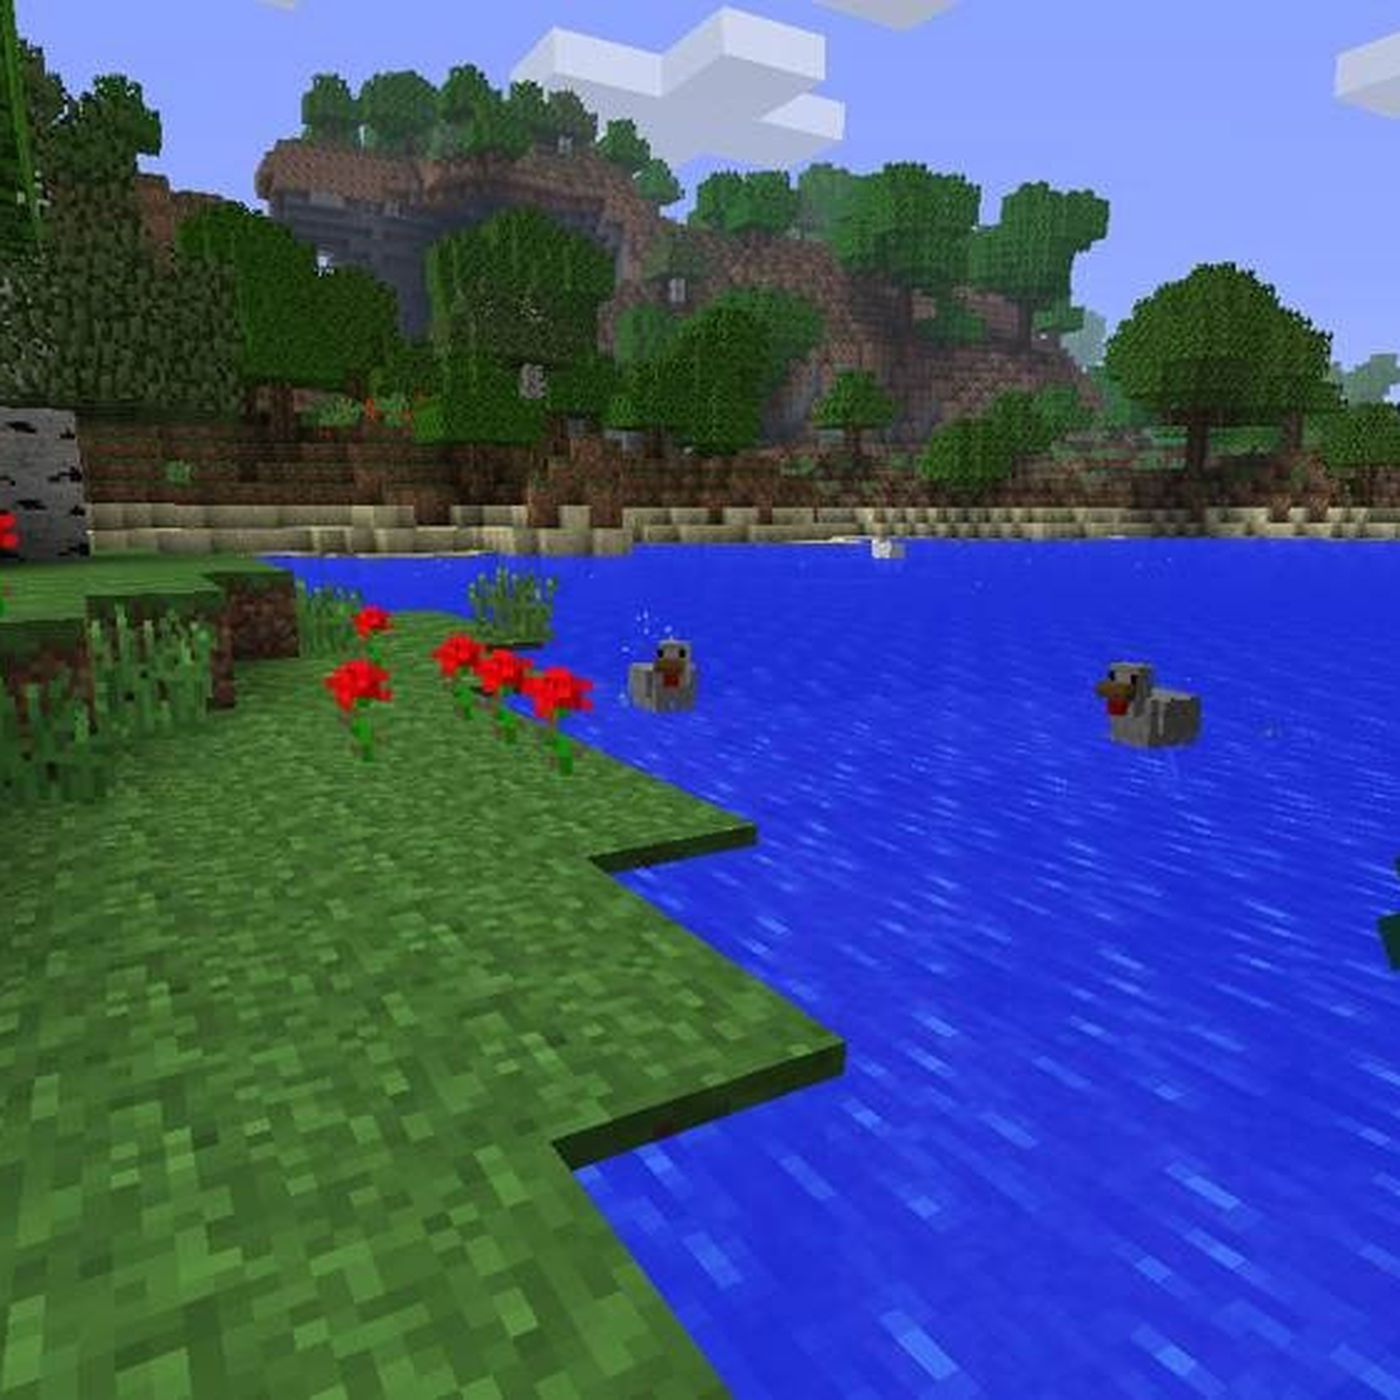 Minecraft' for Xbox 360 has already sold 1 million copies